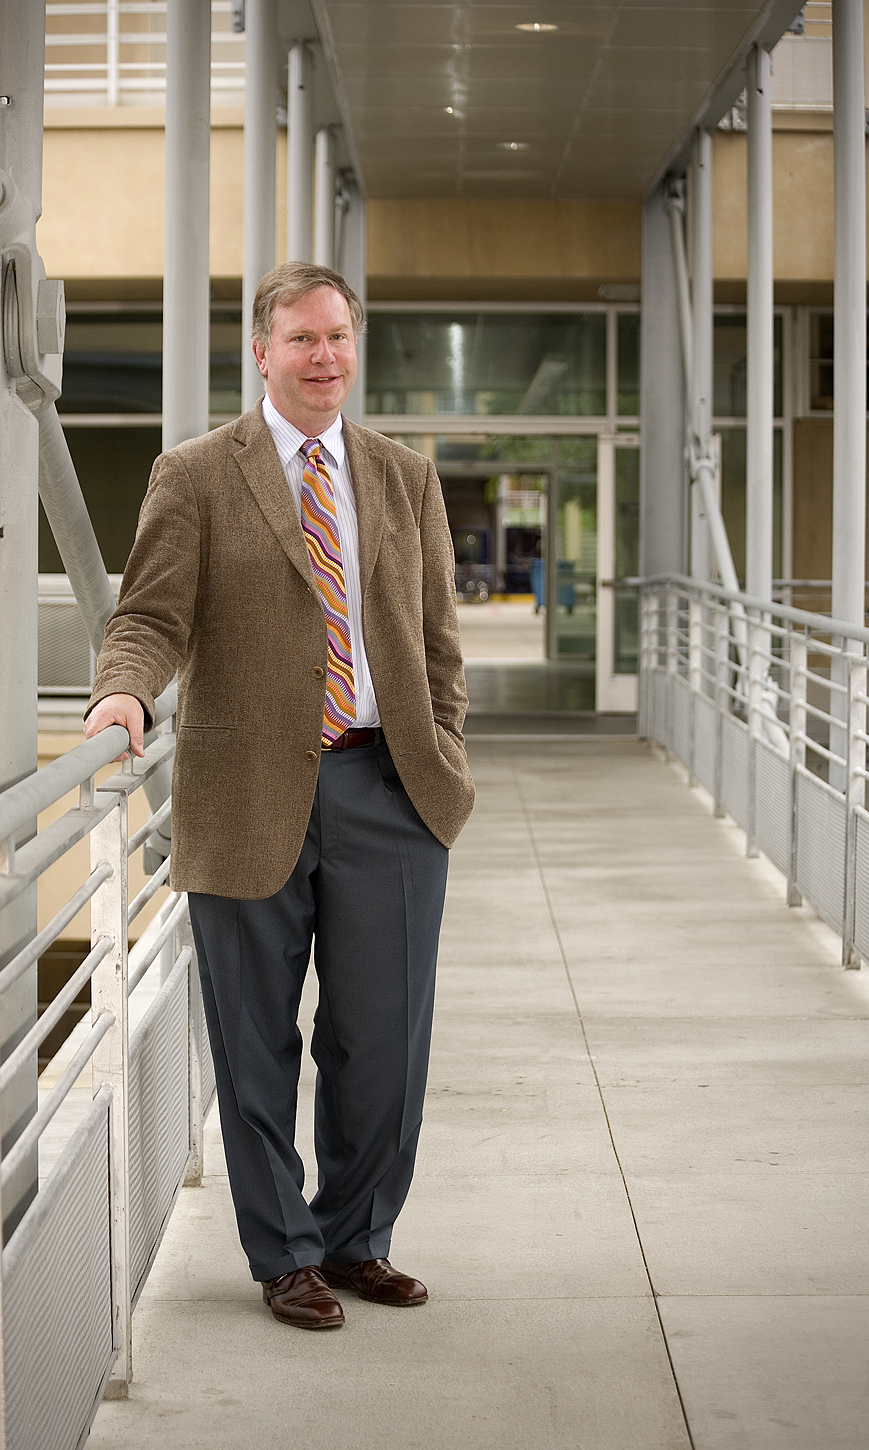 Henri deHahn stands on a covered walkway.